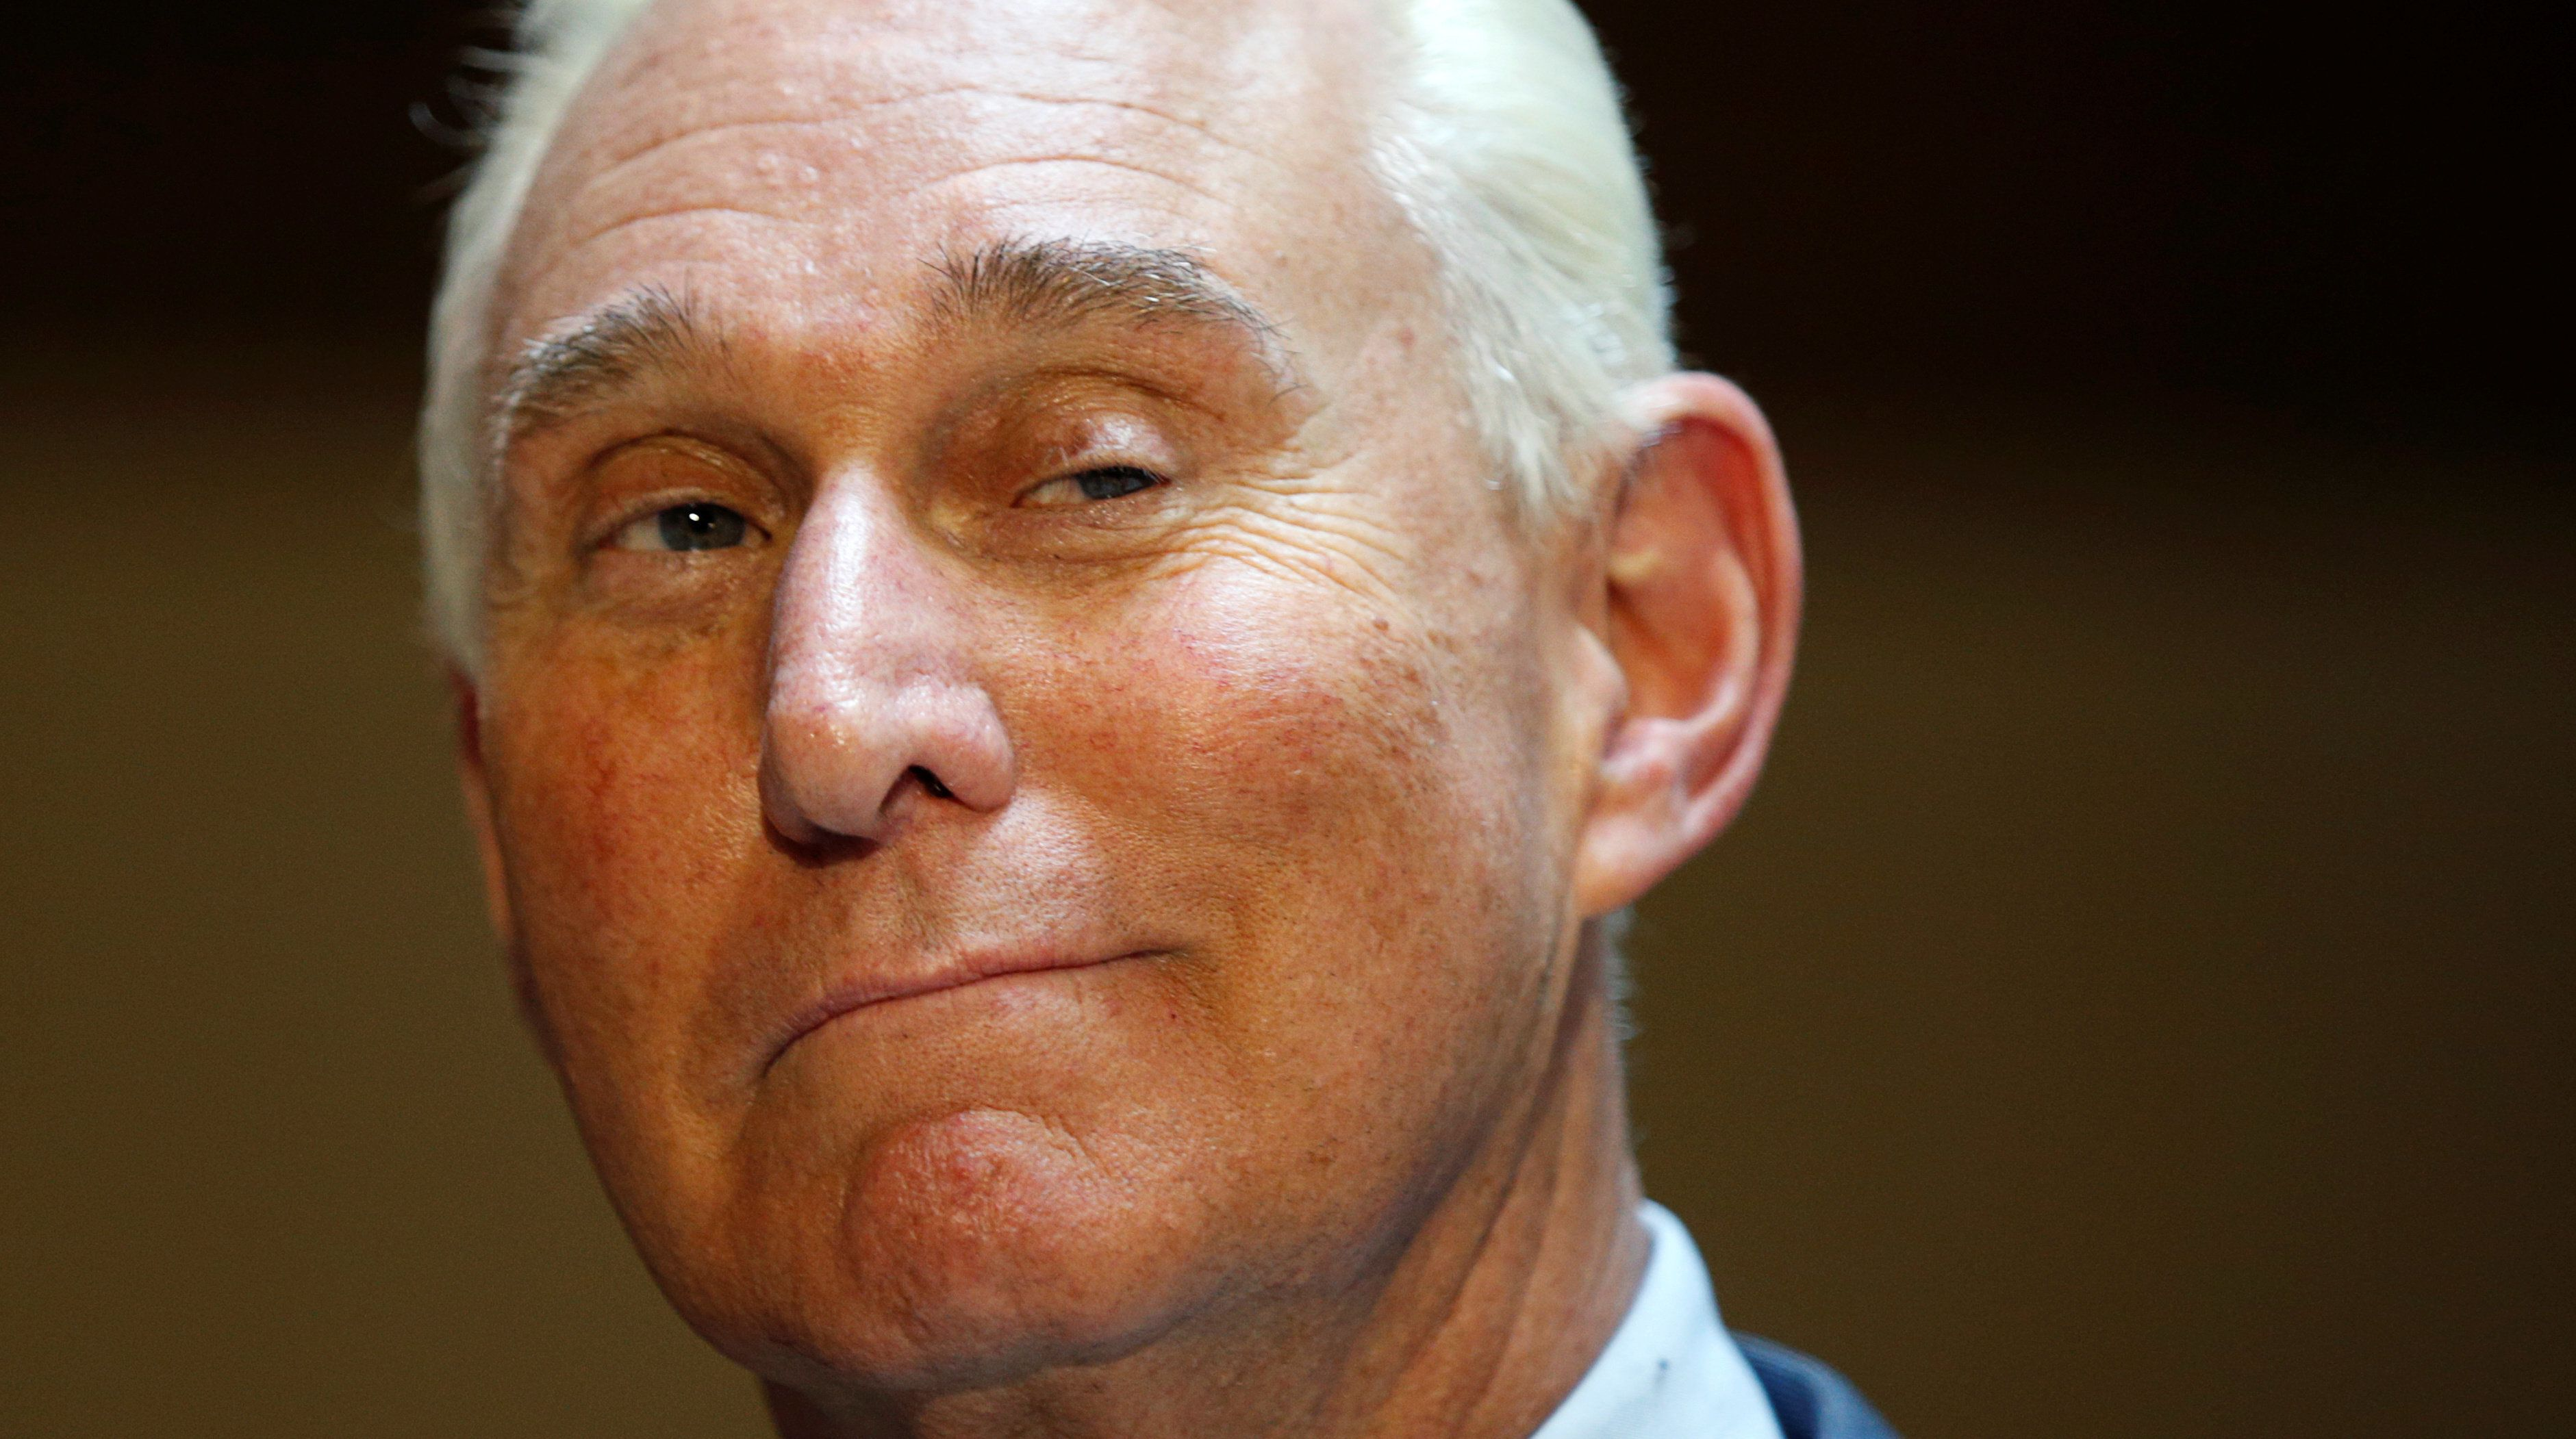 U.S. political consultant Roger Stone, a longtime ally of President Donald Trump, speaks to reporters after appearing before a closed House Intelligence Committee hearing investigating Russian interference in the 2016 U.S. presidential election at the U.S. Capitol in Washington, U.S., September 26, 2017.  REUTERS/Kevin Lamarque